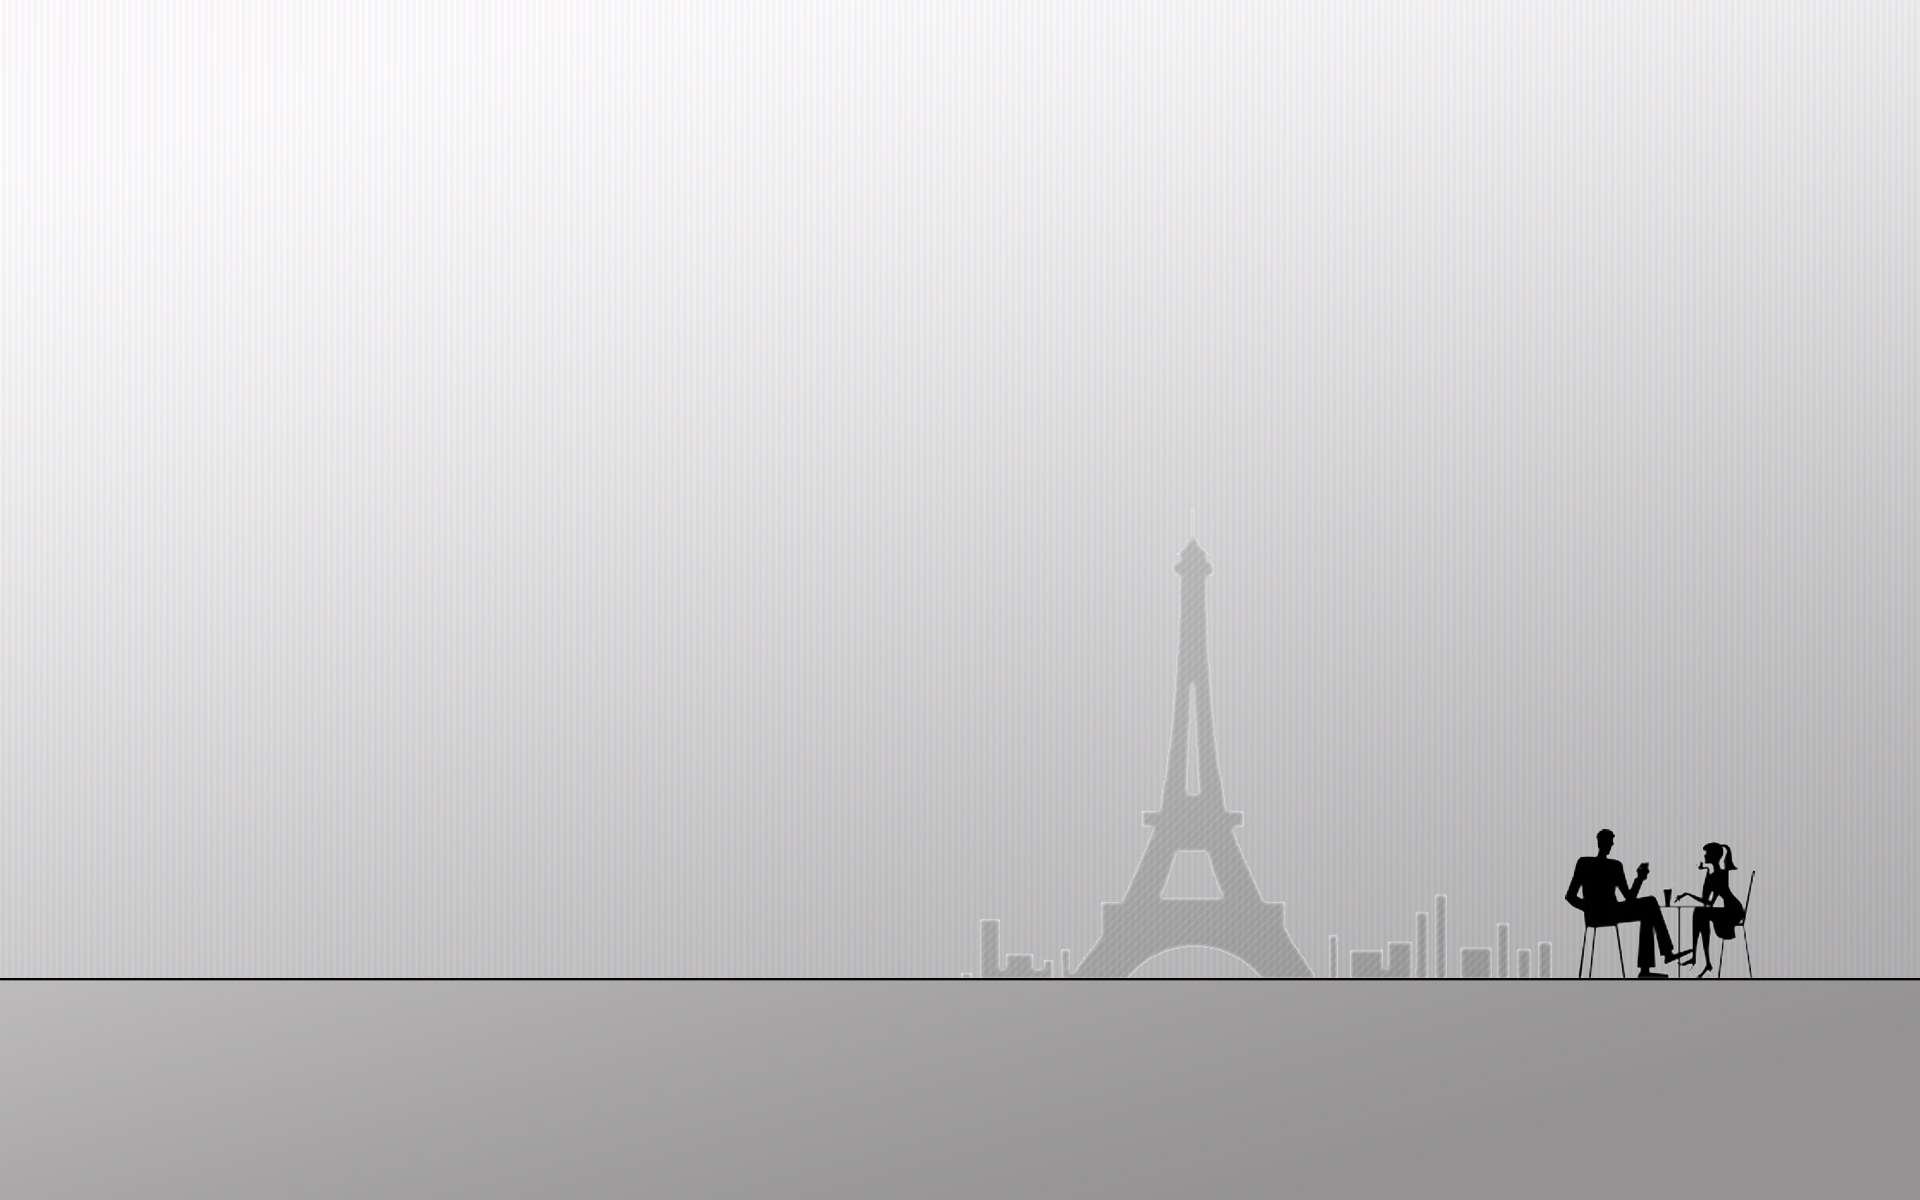 Paris Cafe Wall by dimage 1920x1200